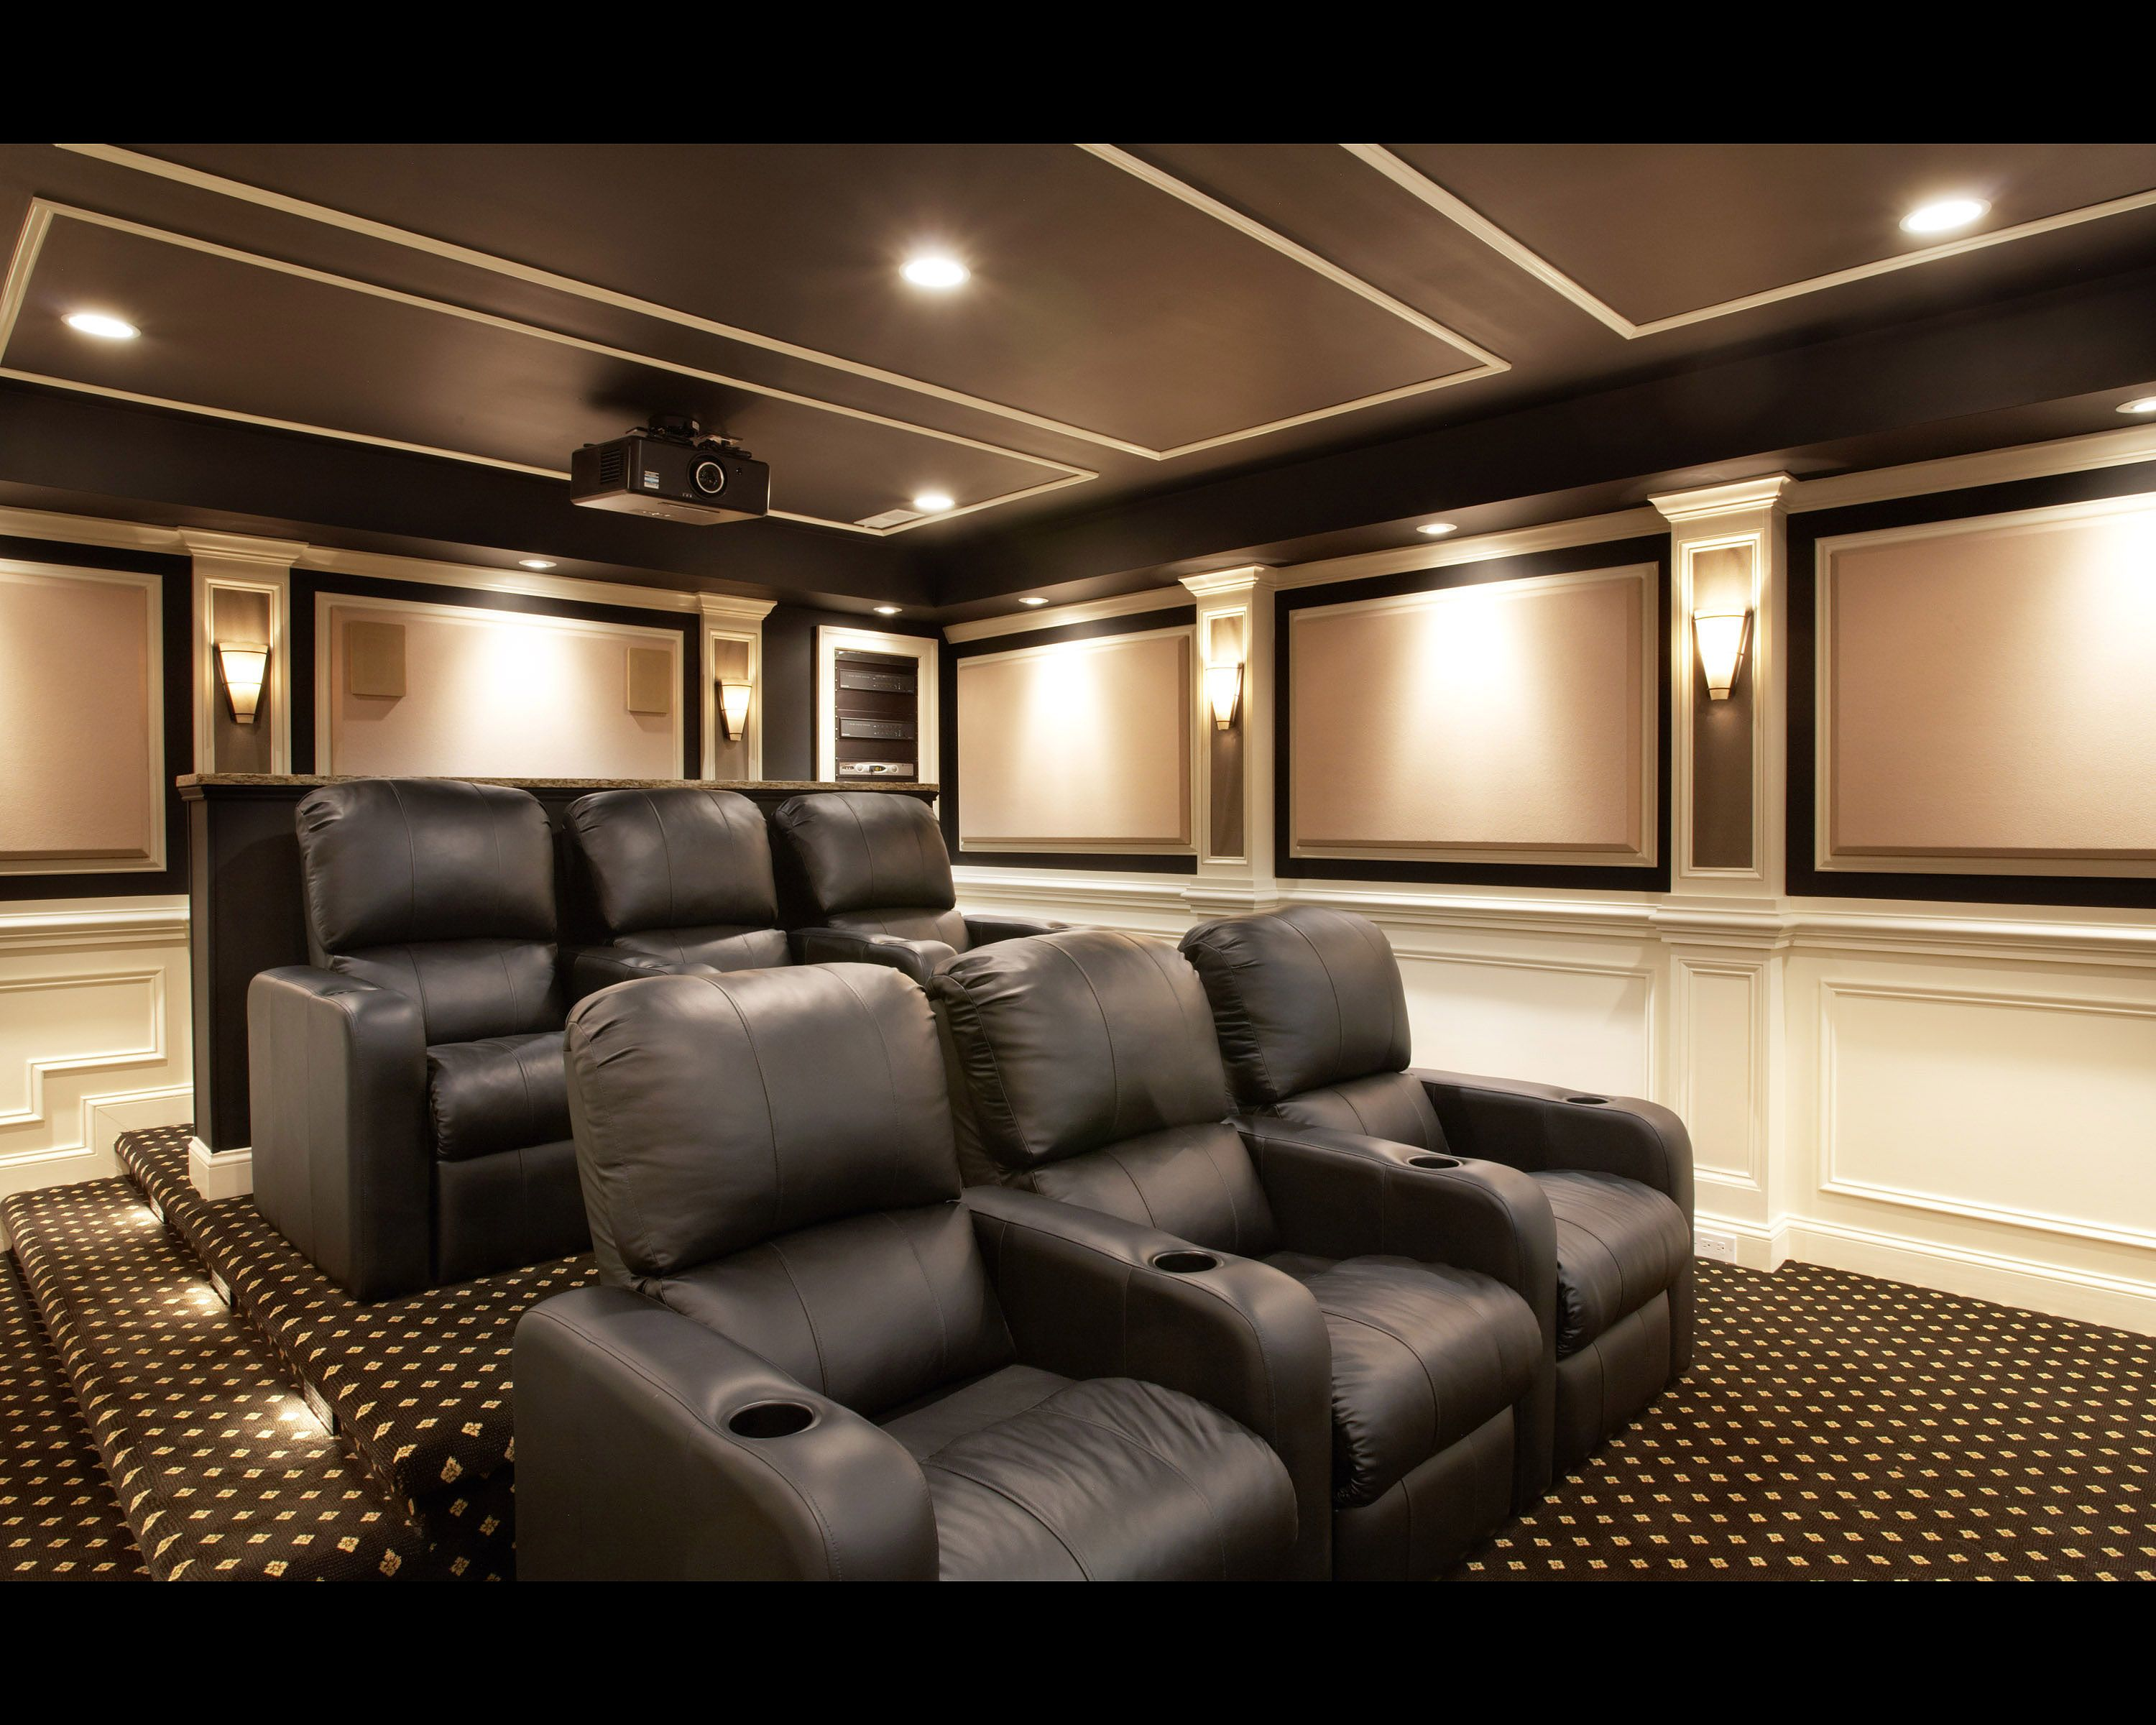 custom home theater design on 3000x2400 design award winning theater side view cedia level i. Black Bedroom Furniture Sets. Home Design Ideas